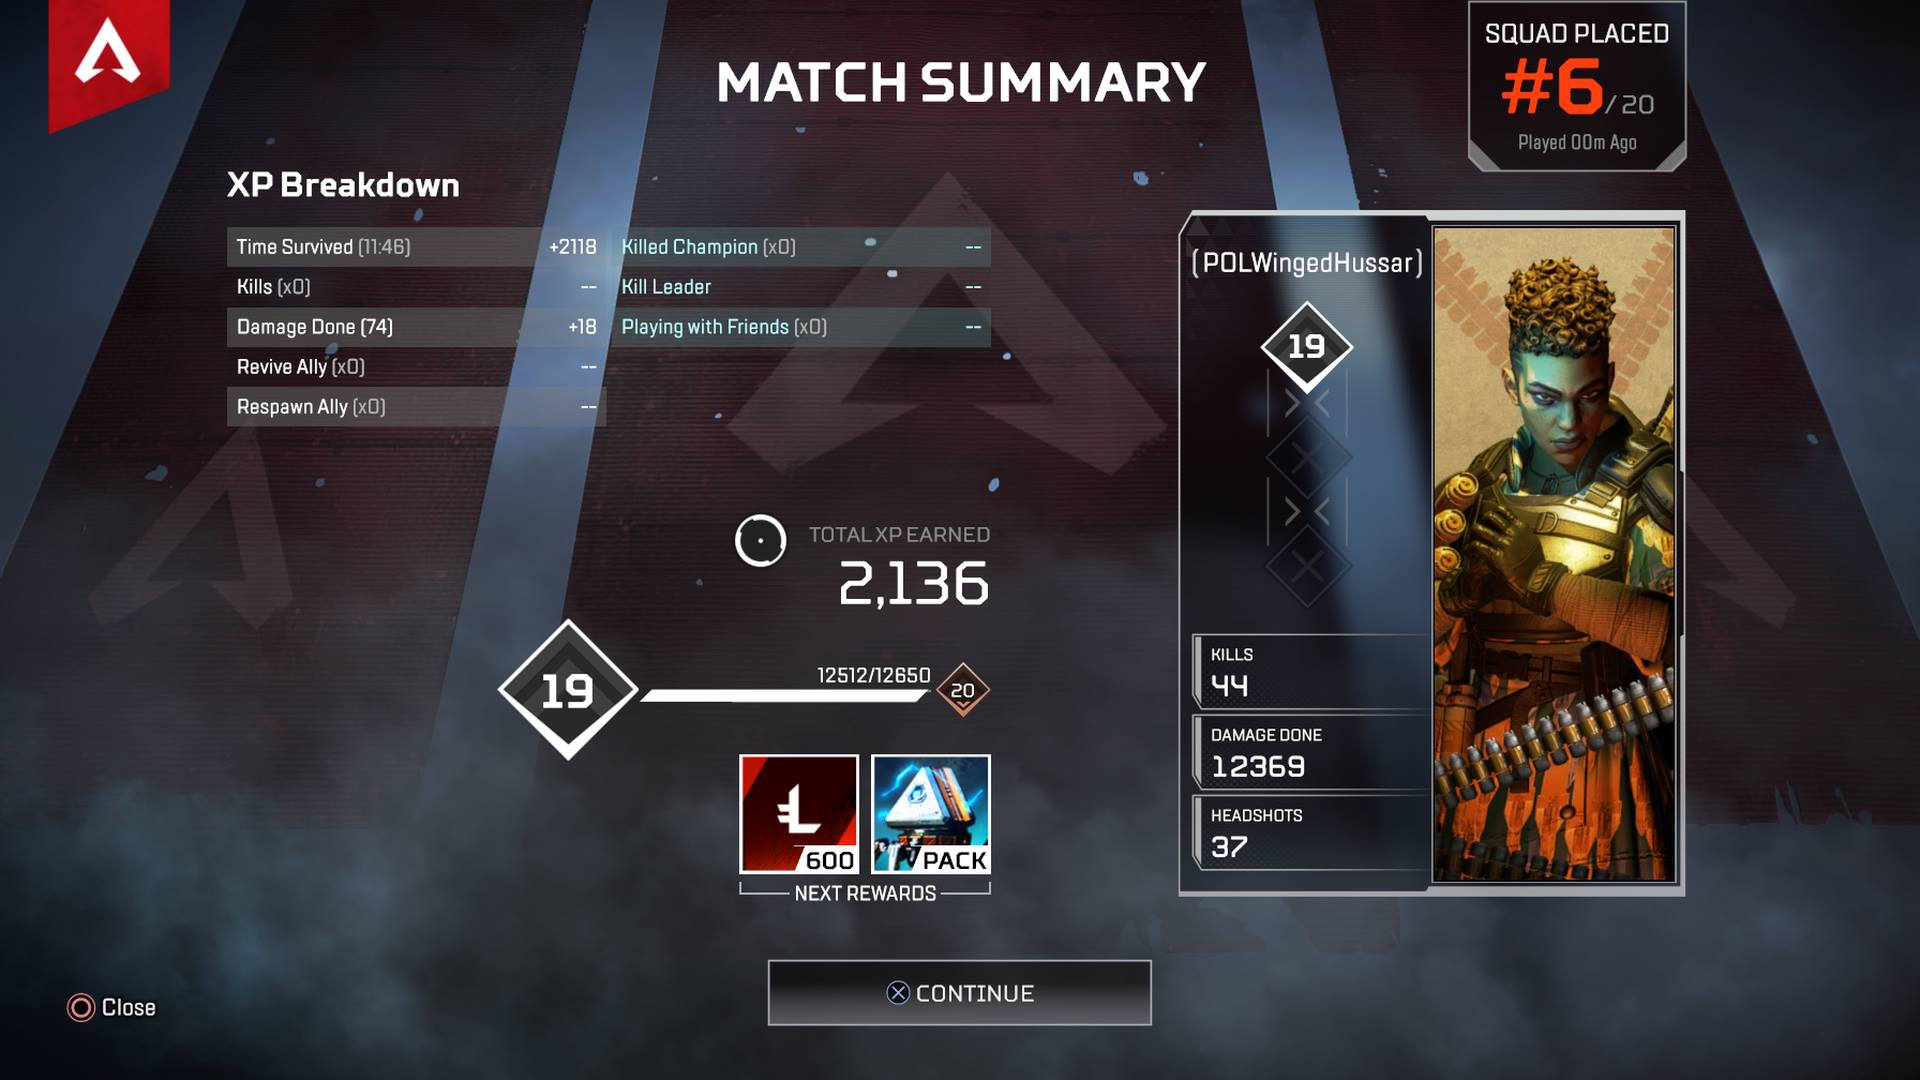 At the end of each match, you can view a summary of your performance and a breakdown of the XP you earned in Apex Legends.